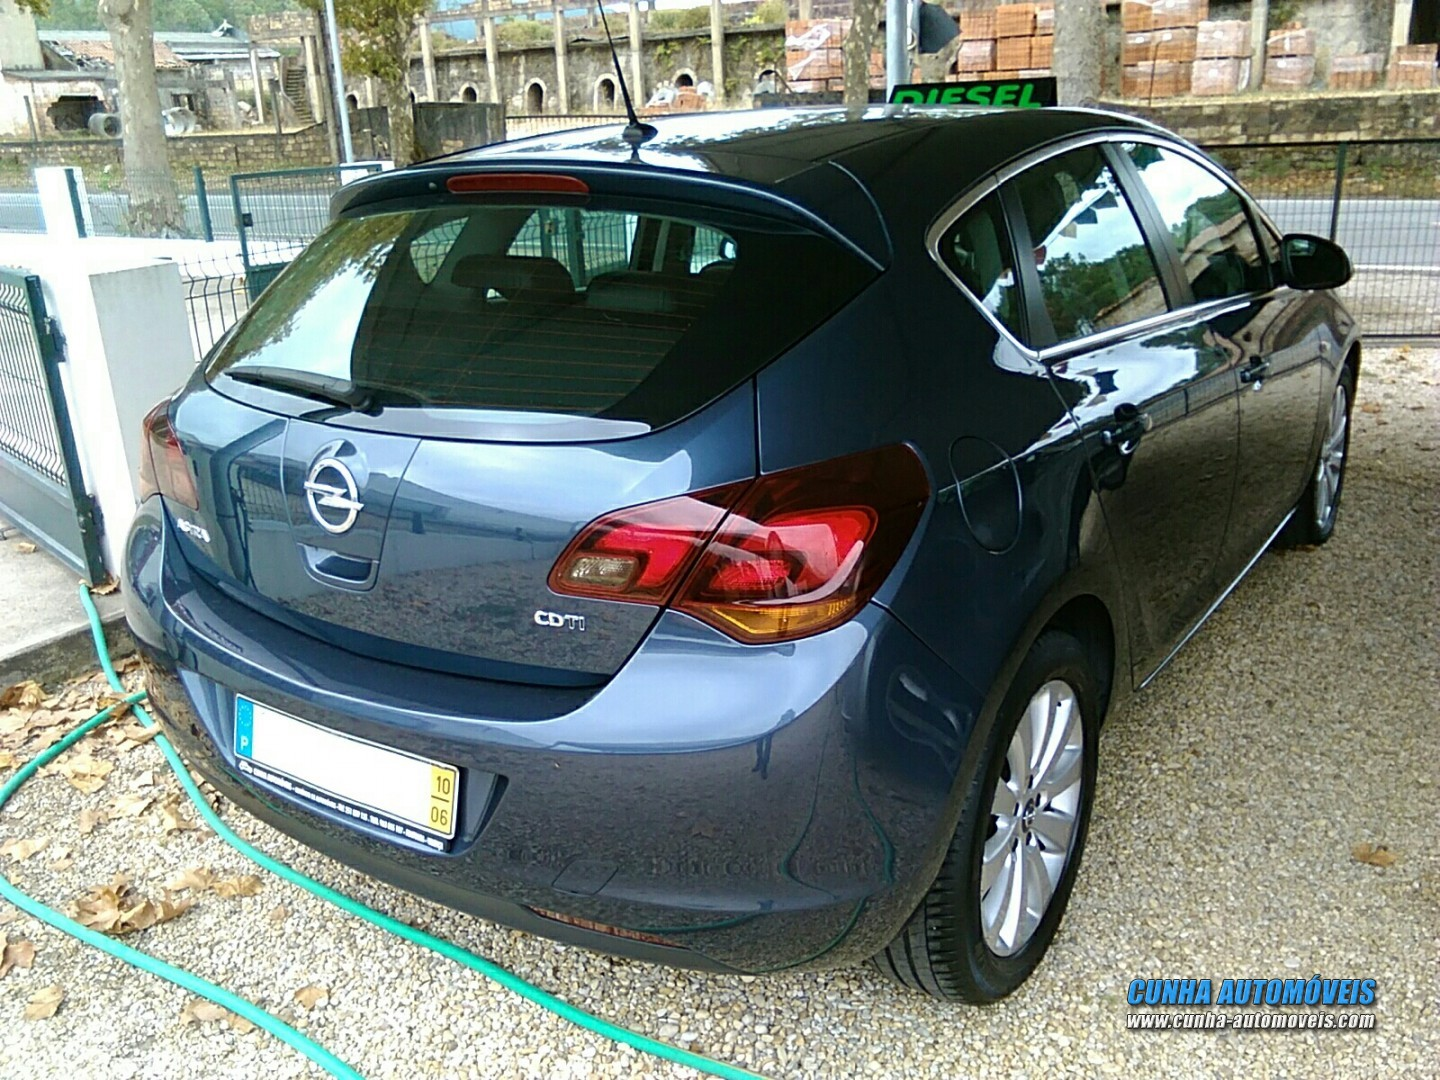 OPEL Astra 1.7 CDTI 110CV Sports Tourer Cosmo - Auto Usate ...